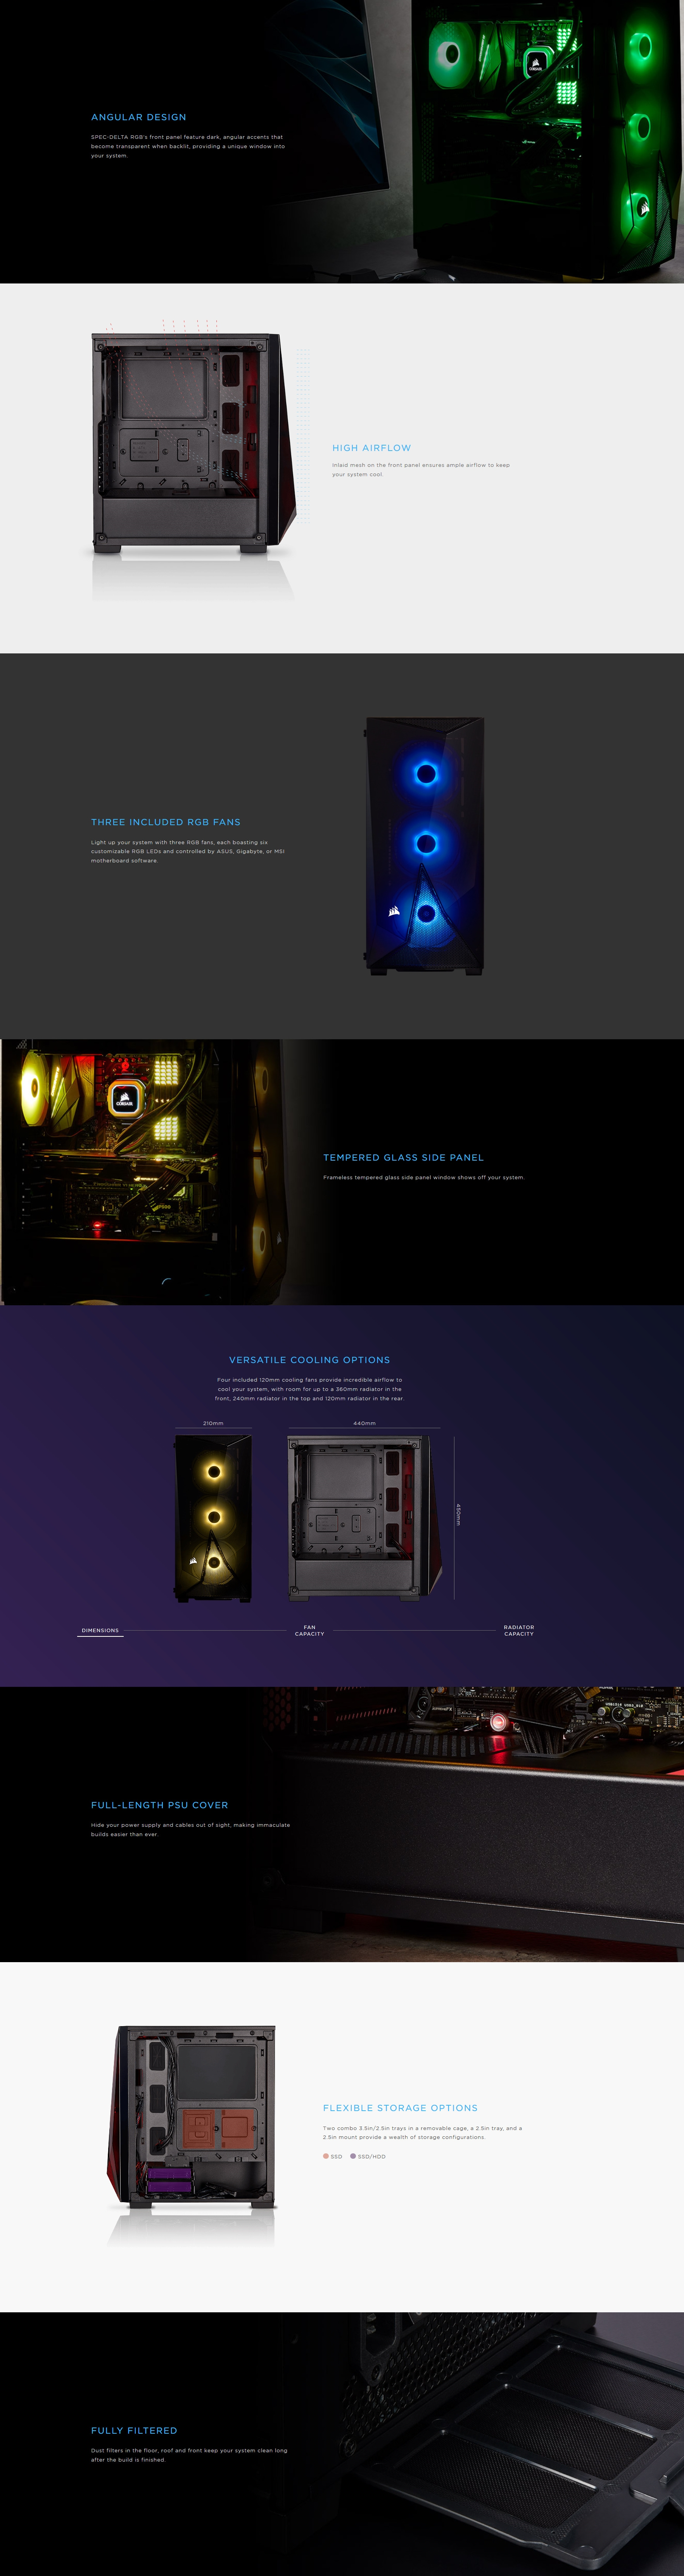 A large marketing image providing additional information about the product Corsair Carbide SPEC-DELTA Black RGB Mid Tower Case w/Tempered Glass Side Panel - Additional alt info not provided